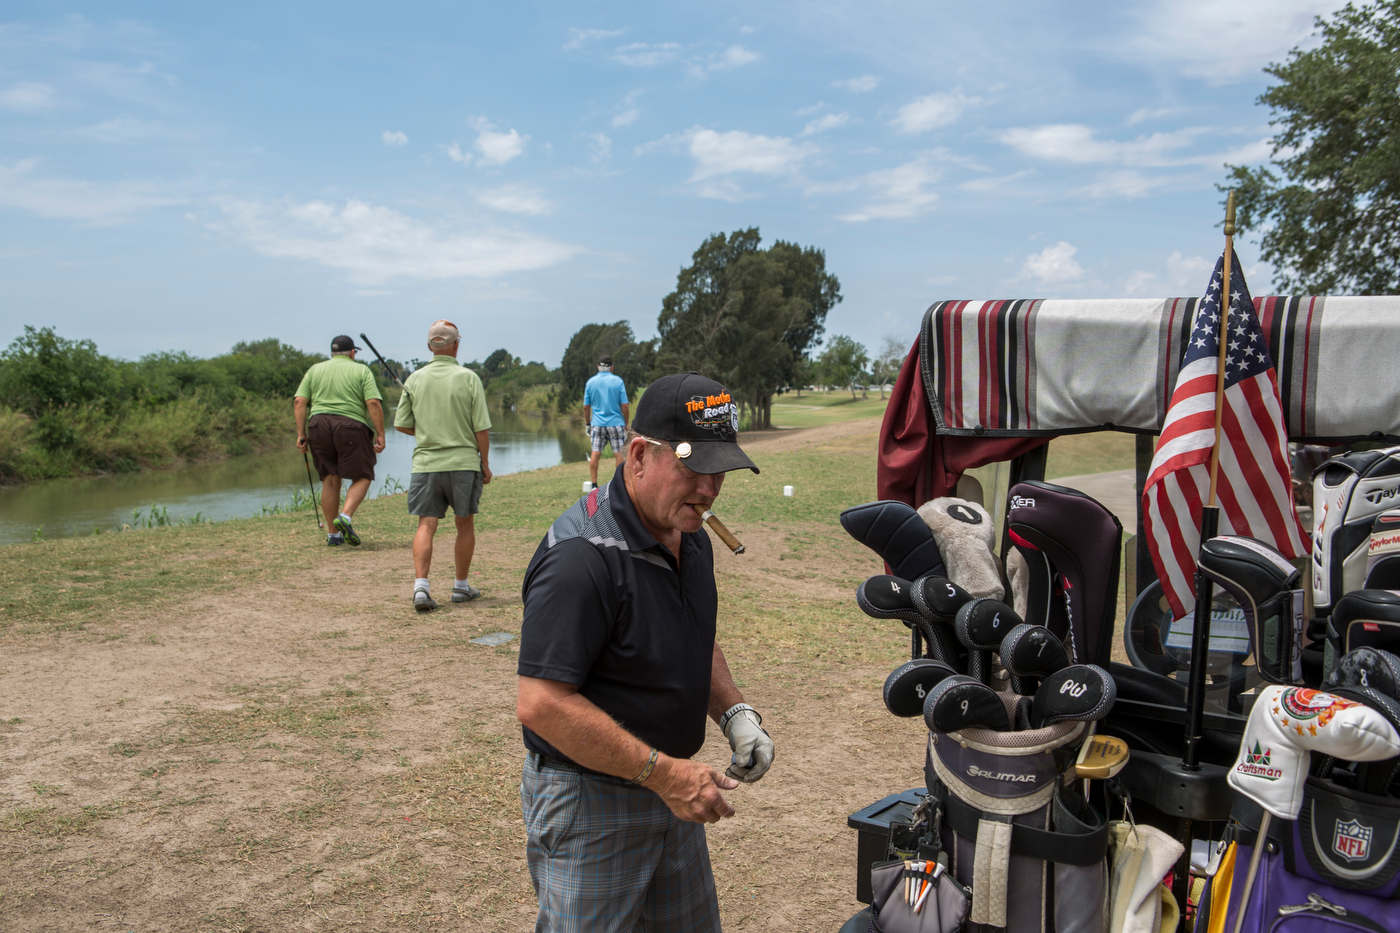 Golfers gear up for a round at the Riverbend Resort and Golf Club near the Rio Grande. The proposed wall extension would cut the golf resort in half.